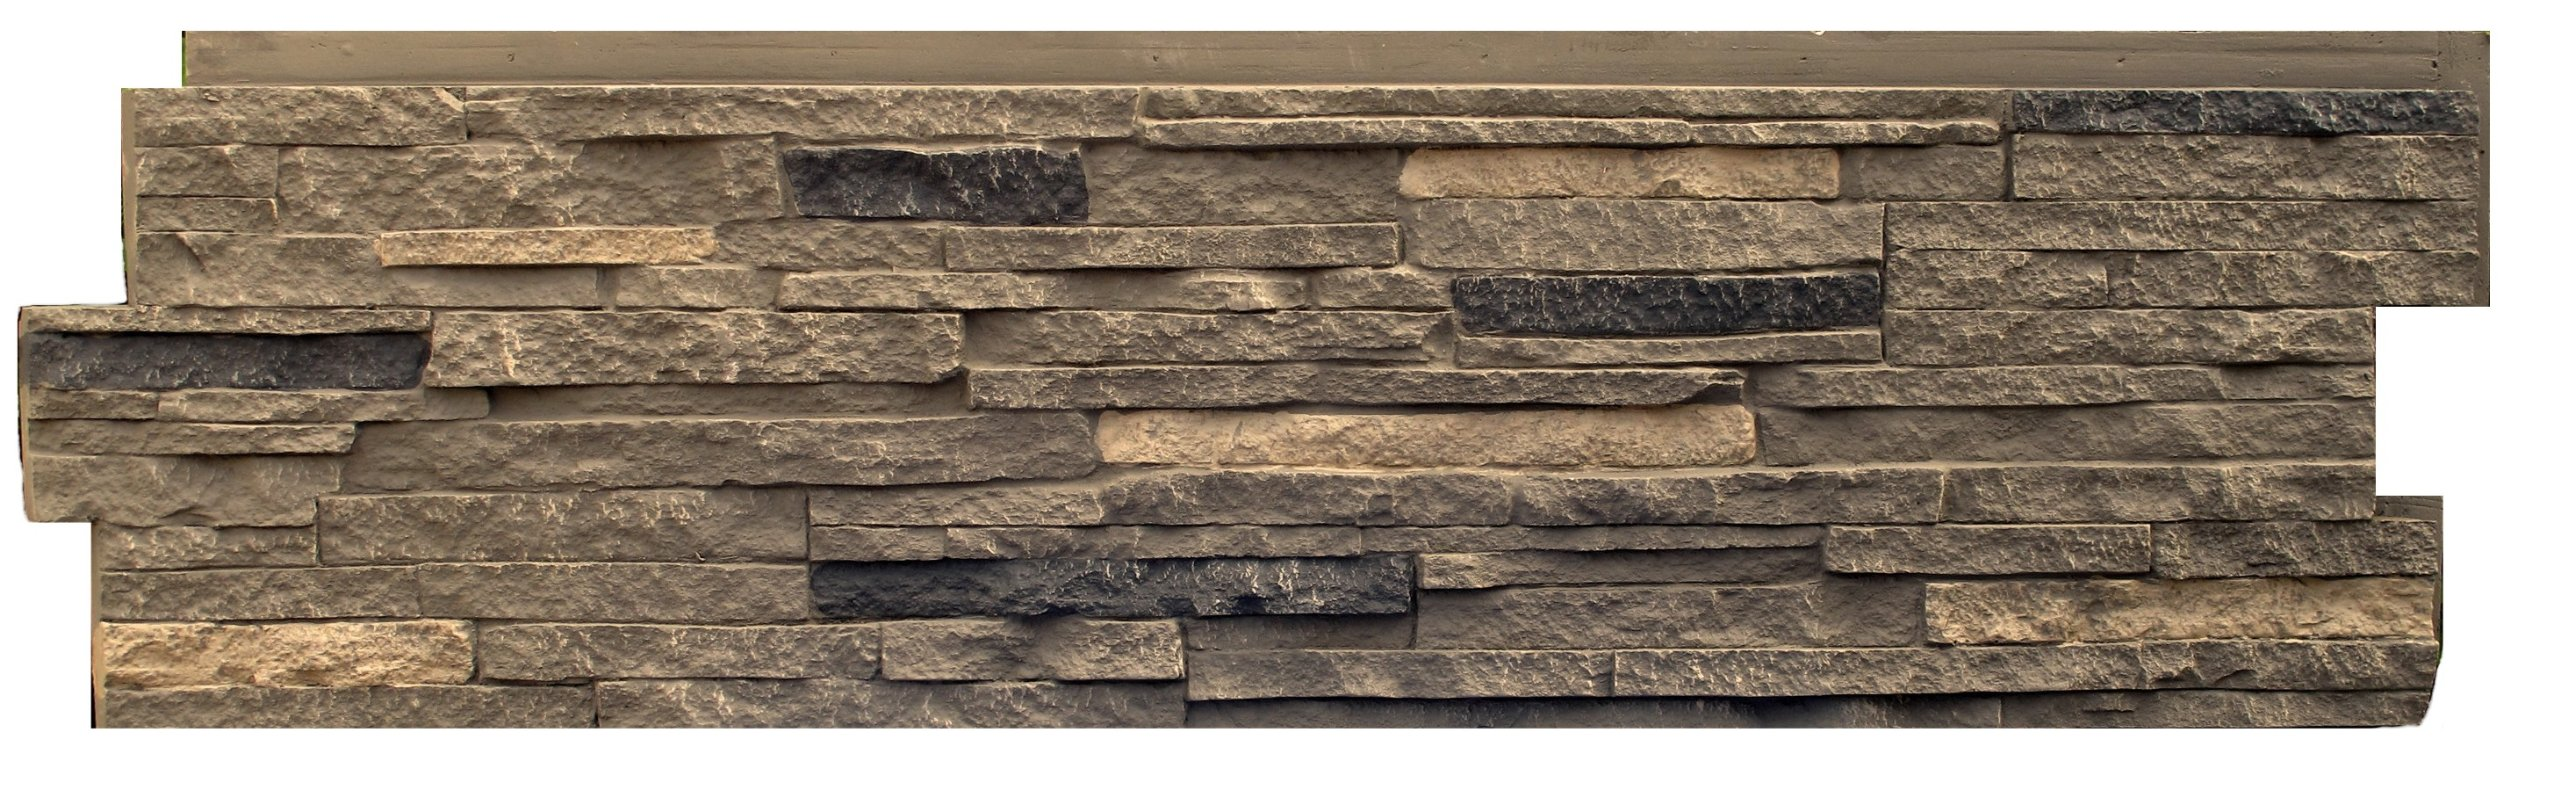 NextStone Stacked Stone Panel Volcanic Gray (5 Panels Per Box)(18.15 Sq.Ft. Per Box)